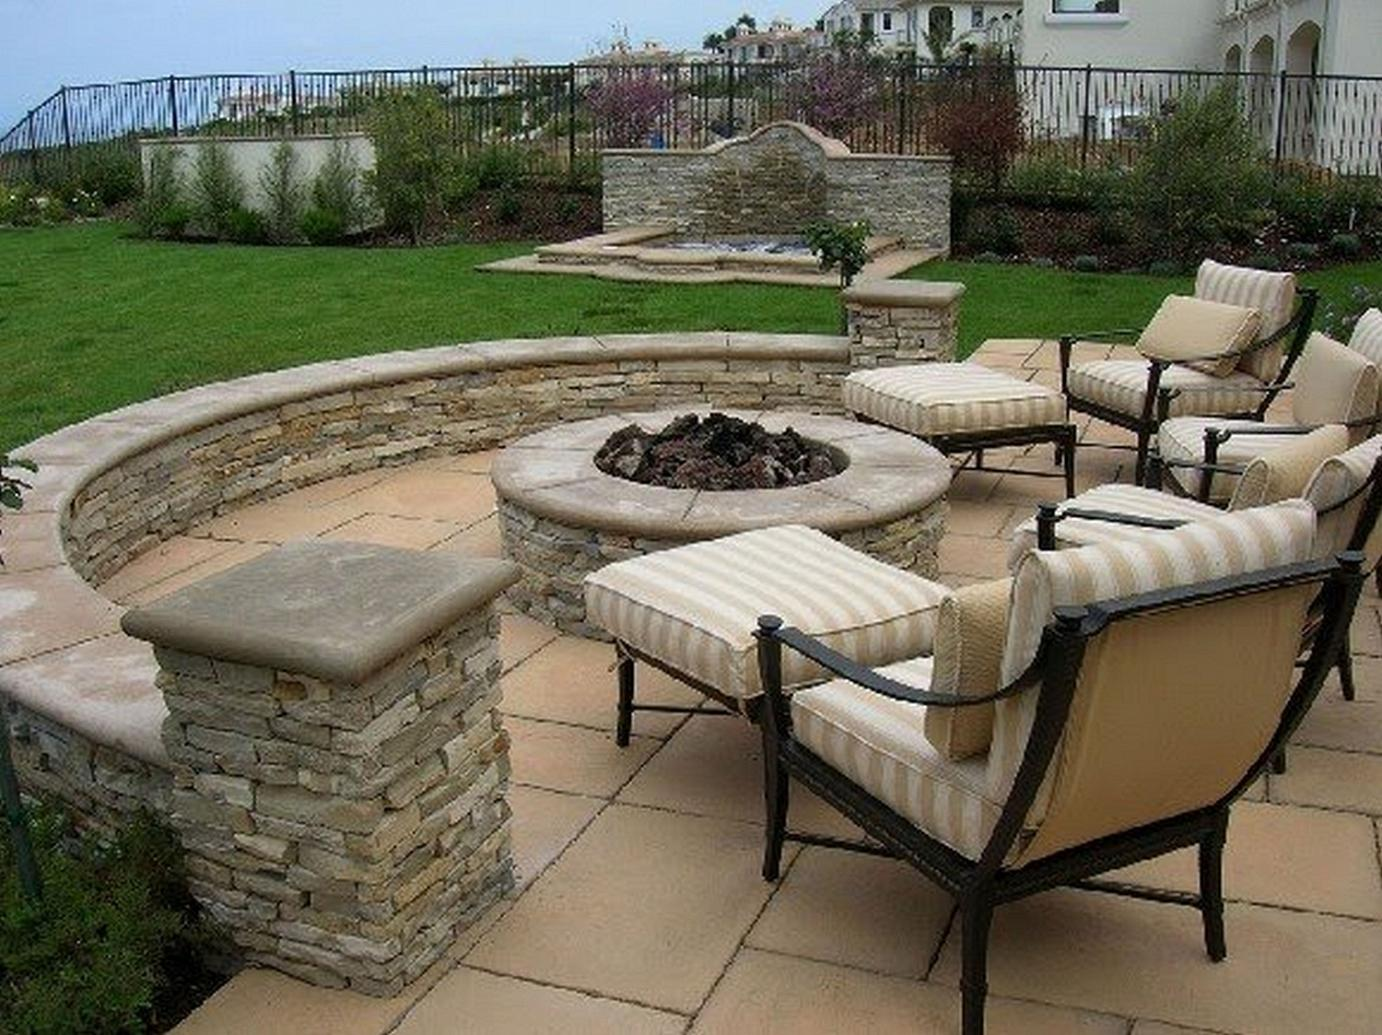 backyard patio ideas on a budget large and beautiful photos photo to select backyard patio ideas on a budget design your home - Patio Ideas On A Budget Designs